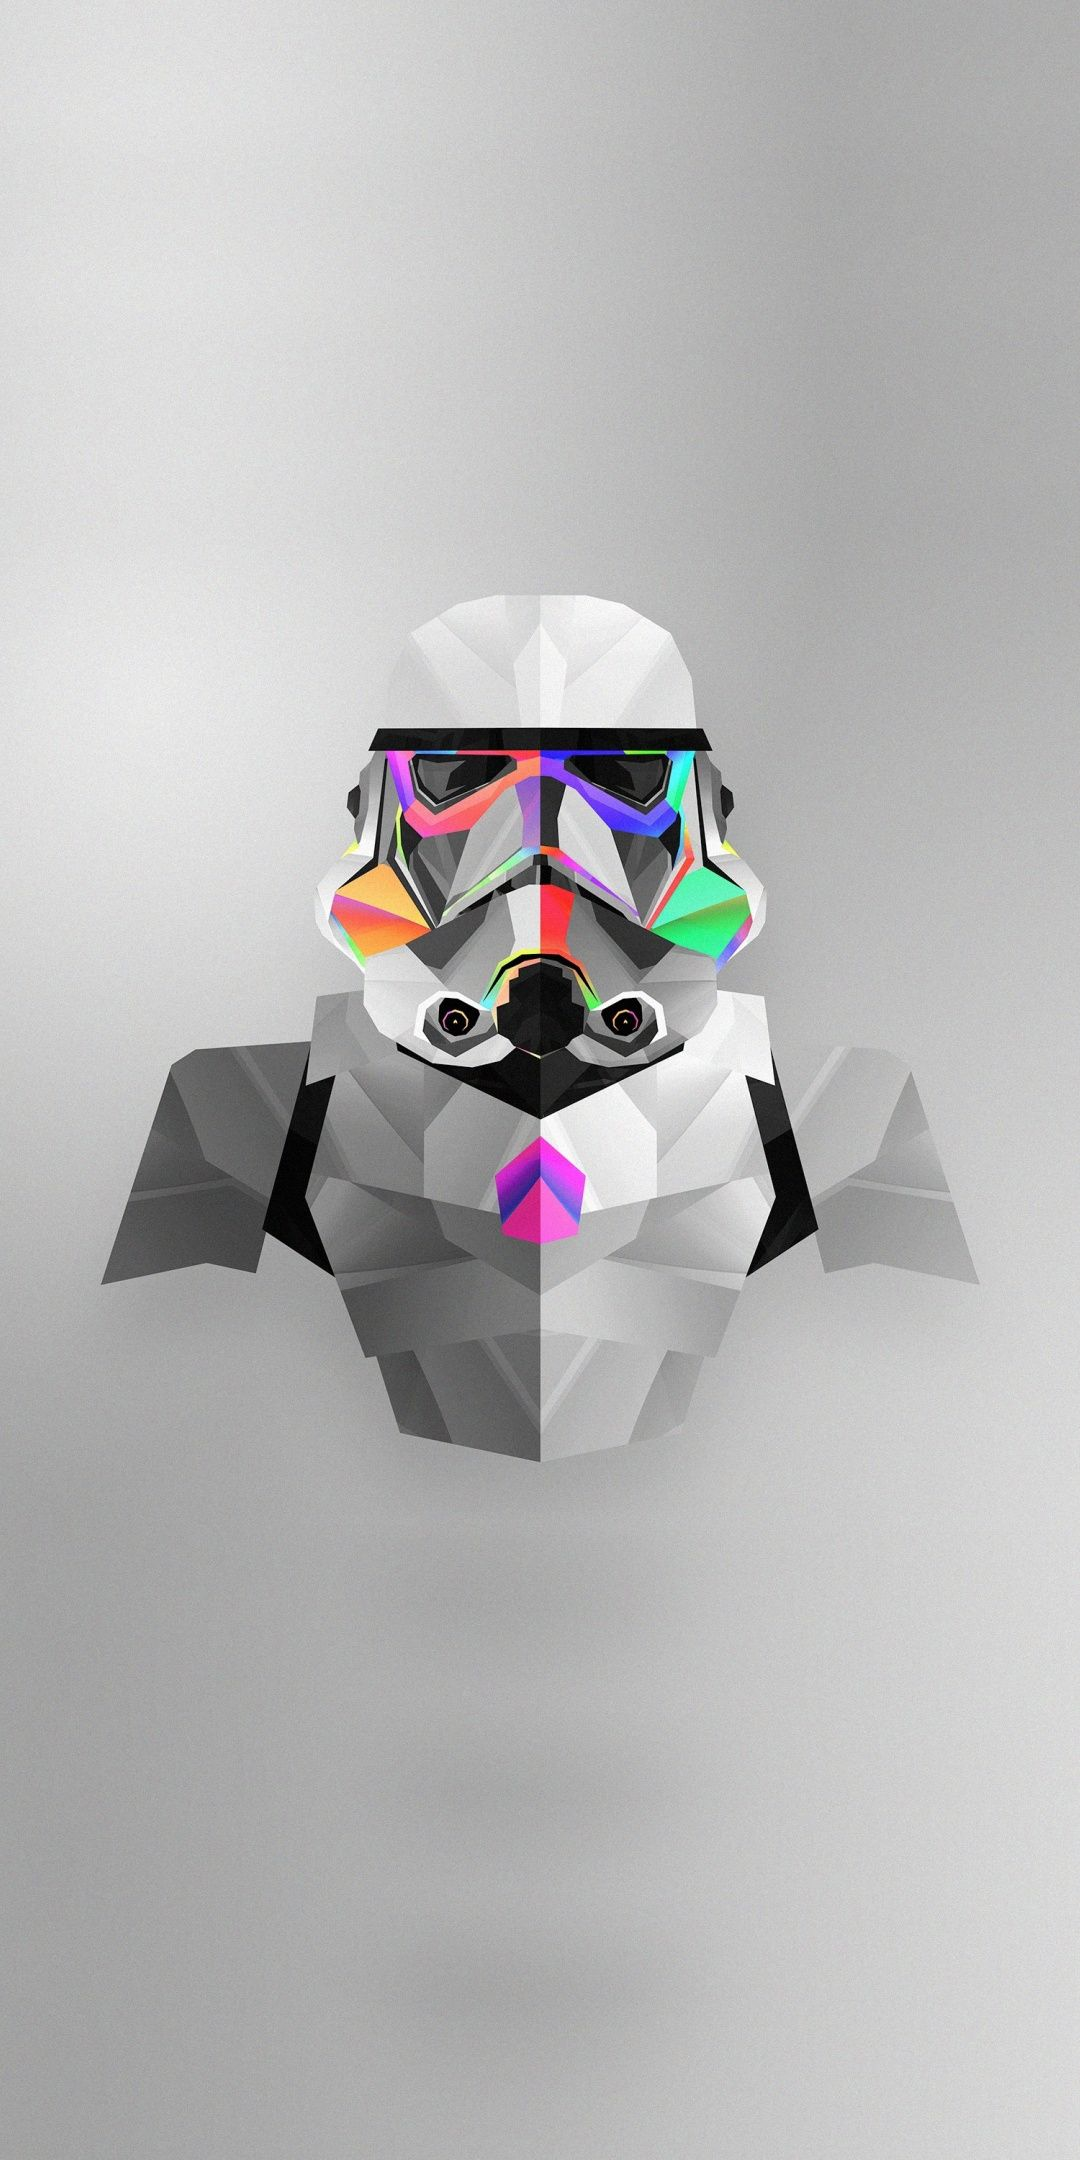 Stormtrooper, abstract, star wars, colorful, minimal, art